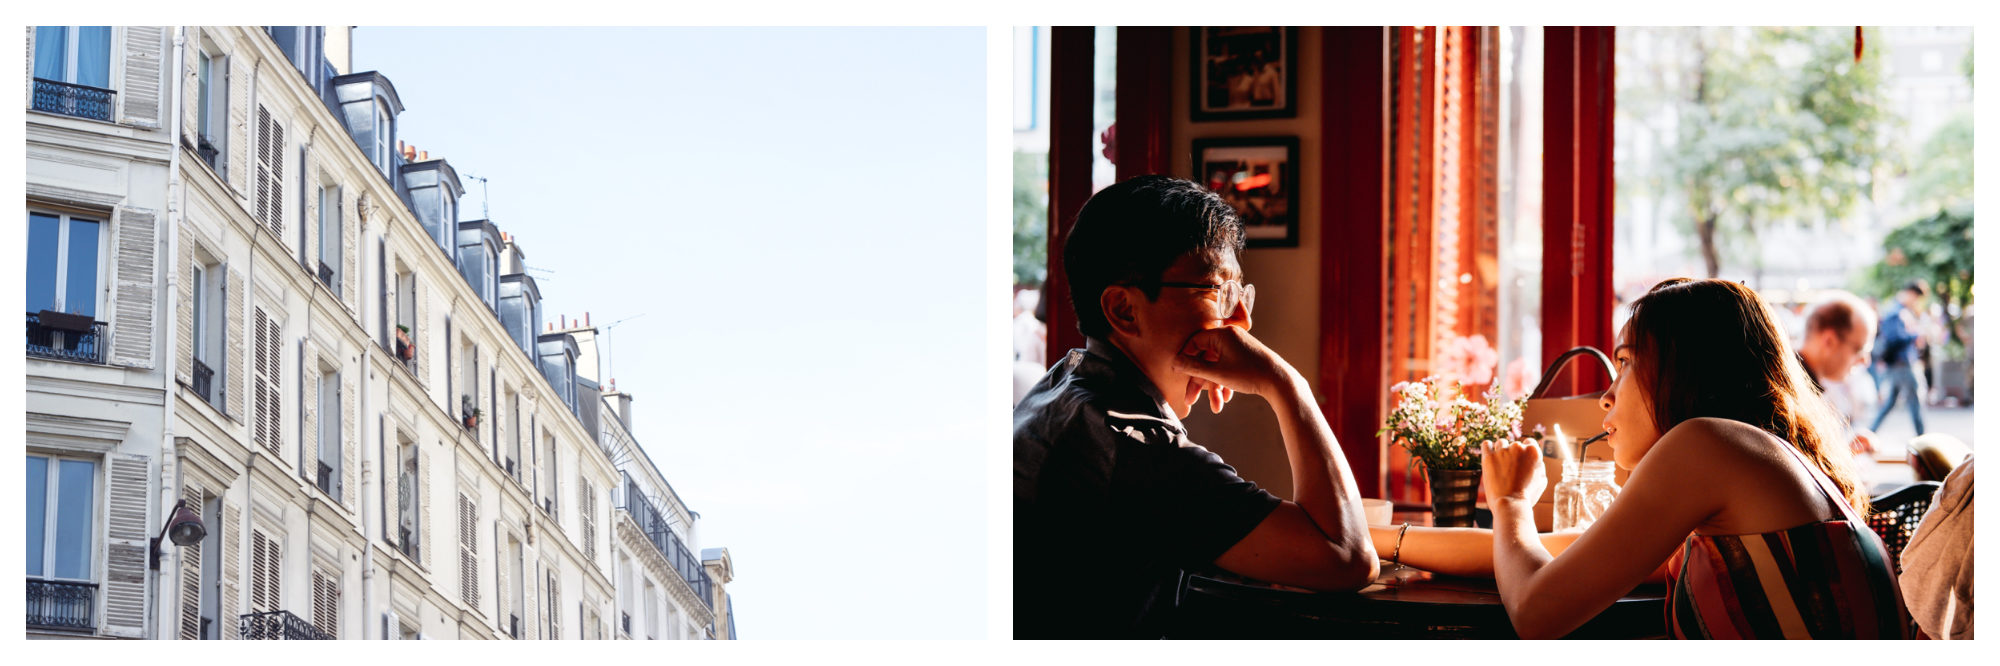 A white Parisian apartment building (left). An Asian couple having a drink at a café in Paris in summer (right).